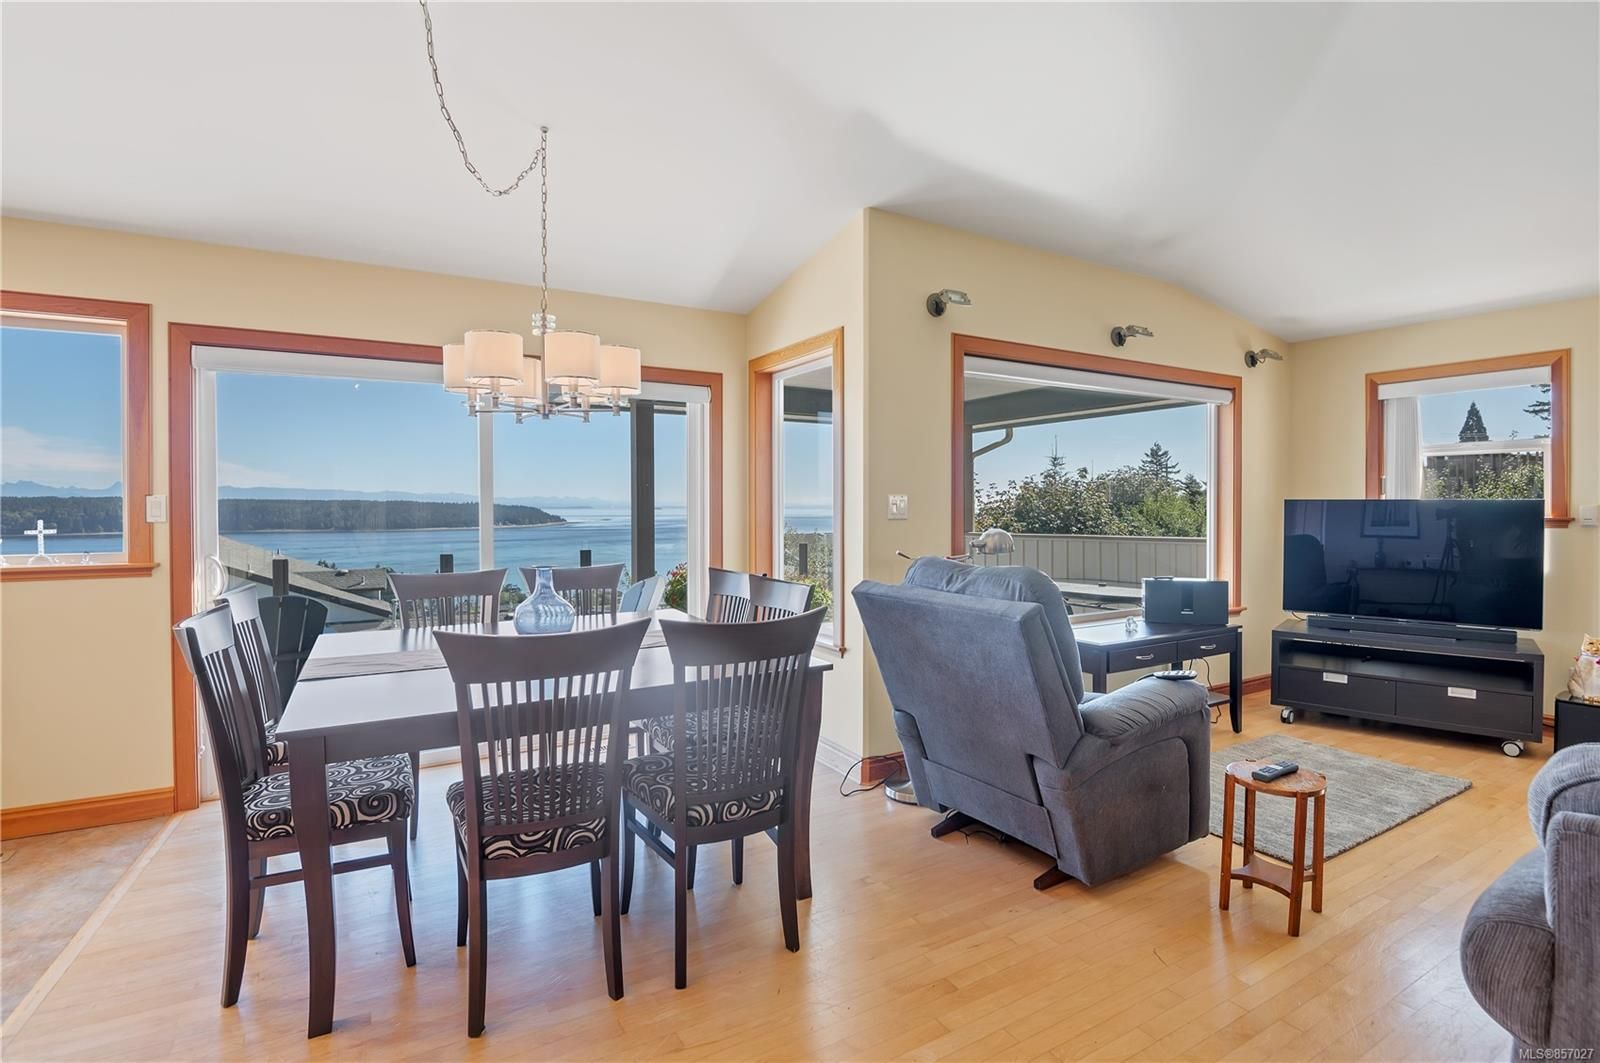 Photo 9: Photos: 253 S Alder St in : CR Campbell River South House for sale (Campbell River)  : MLS®# 857027